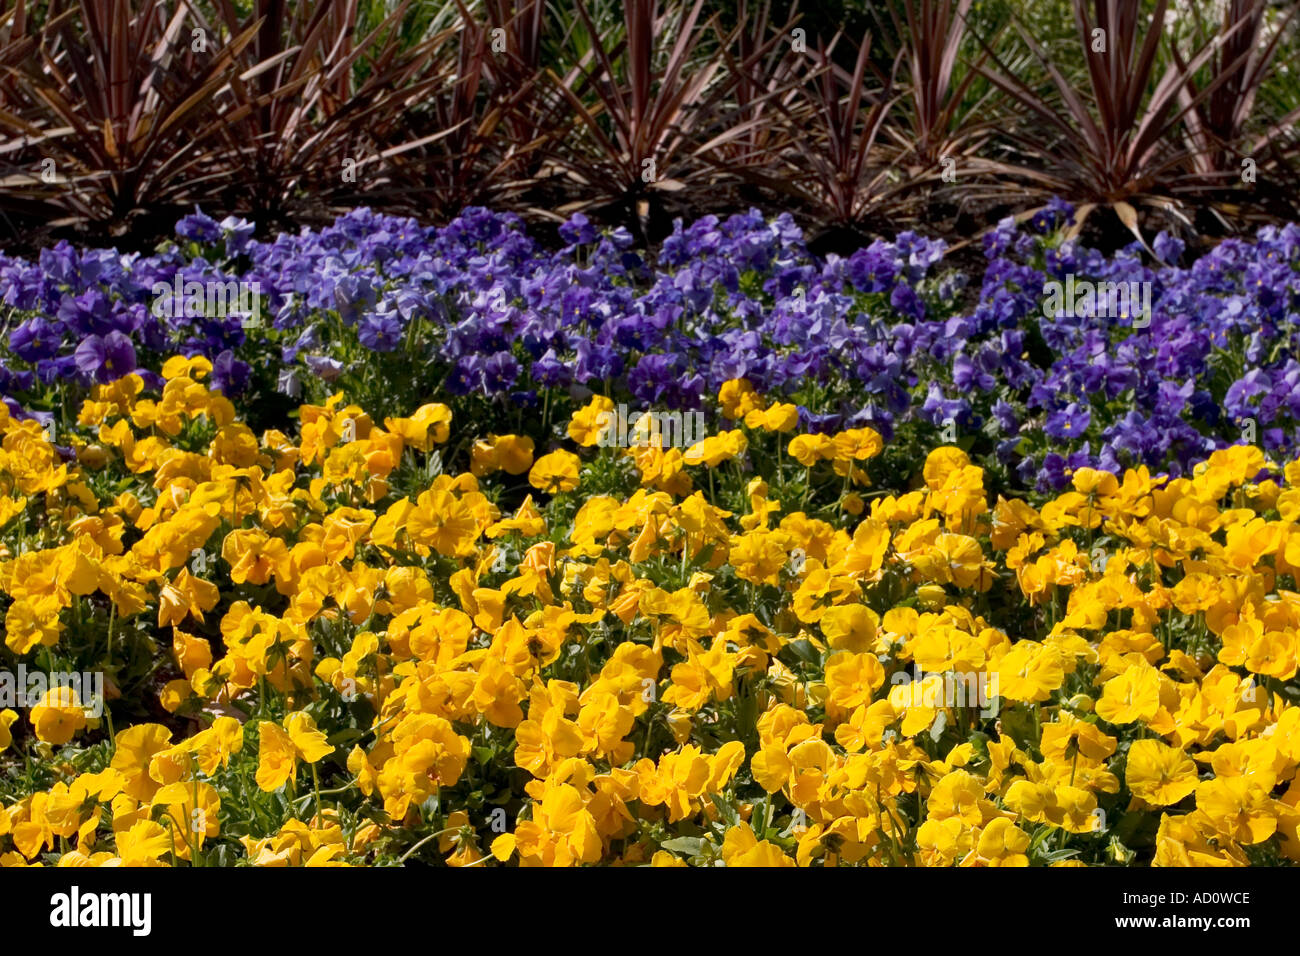 Yellow And Purple Flower Bed Stock Photo 4331981 Alamy